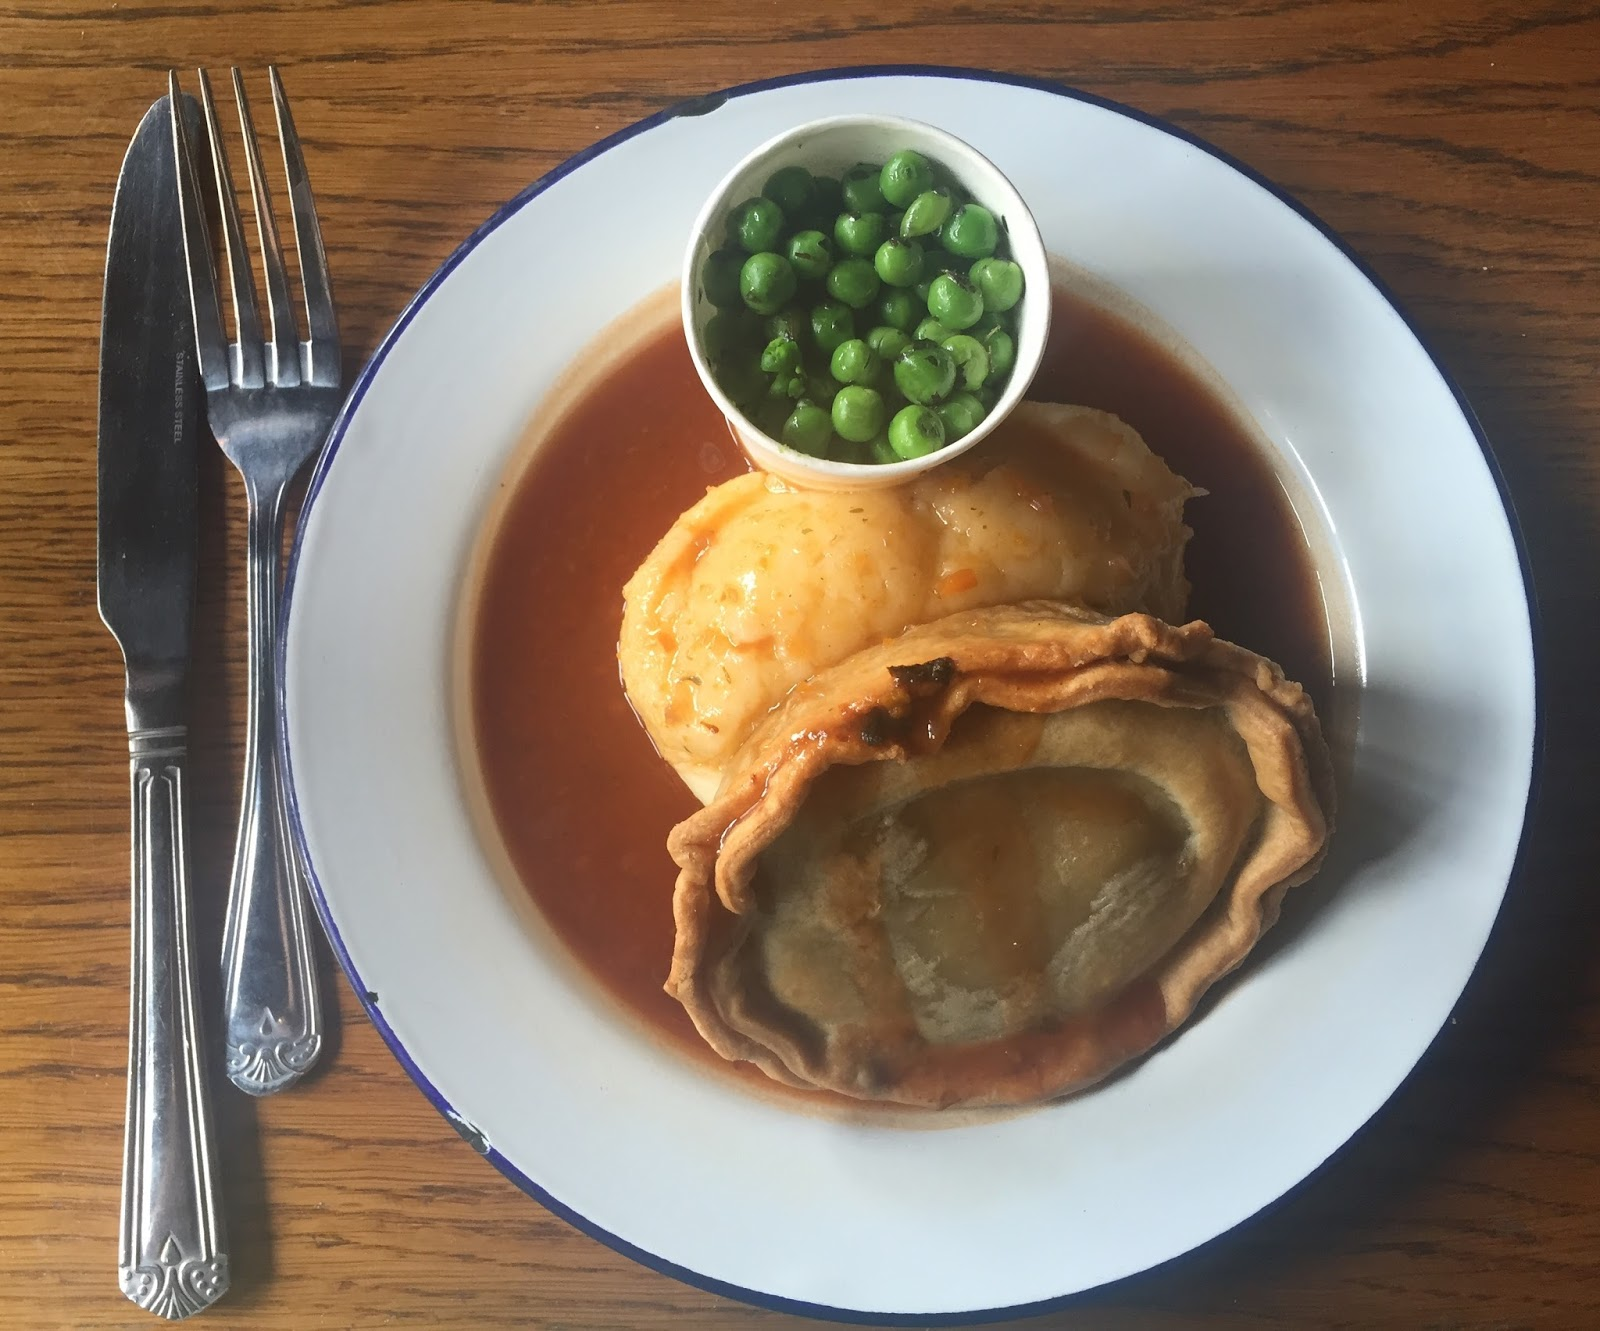 The Best Restaurants in the North East - best comfort food - pies from the redhouse newcastle